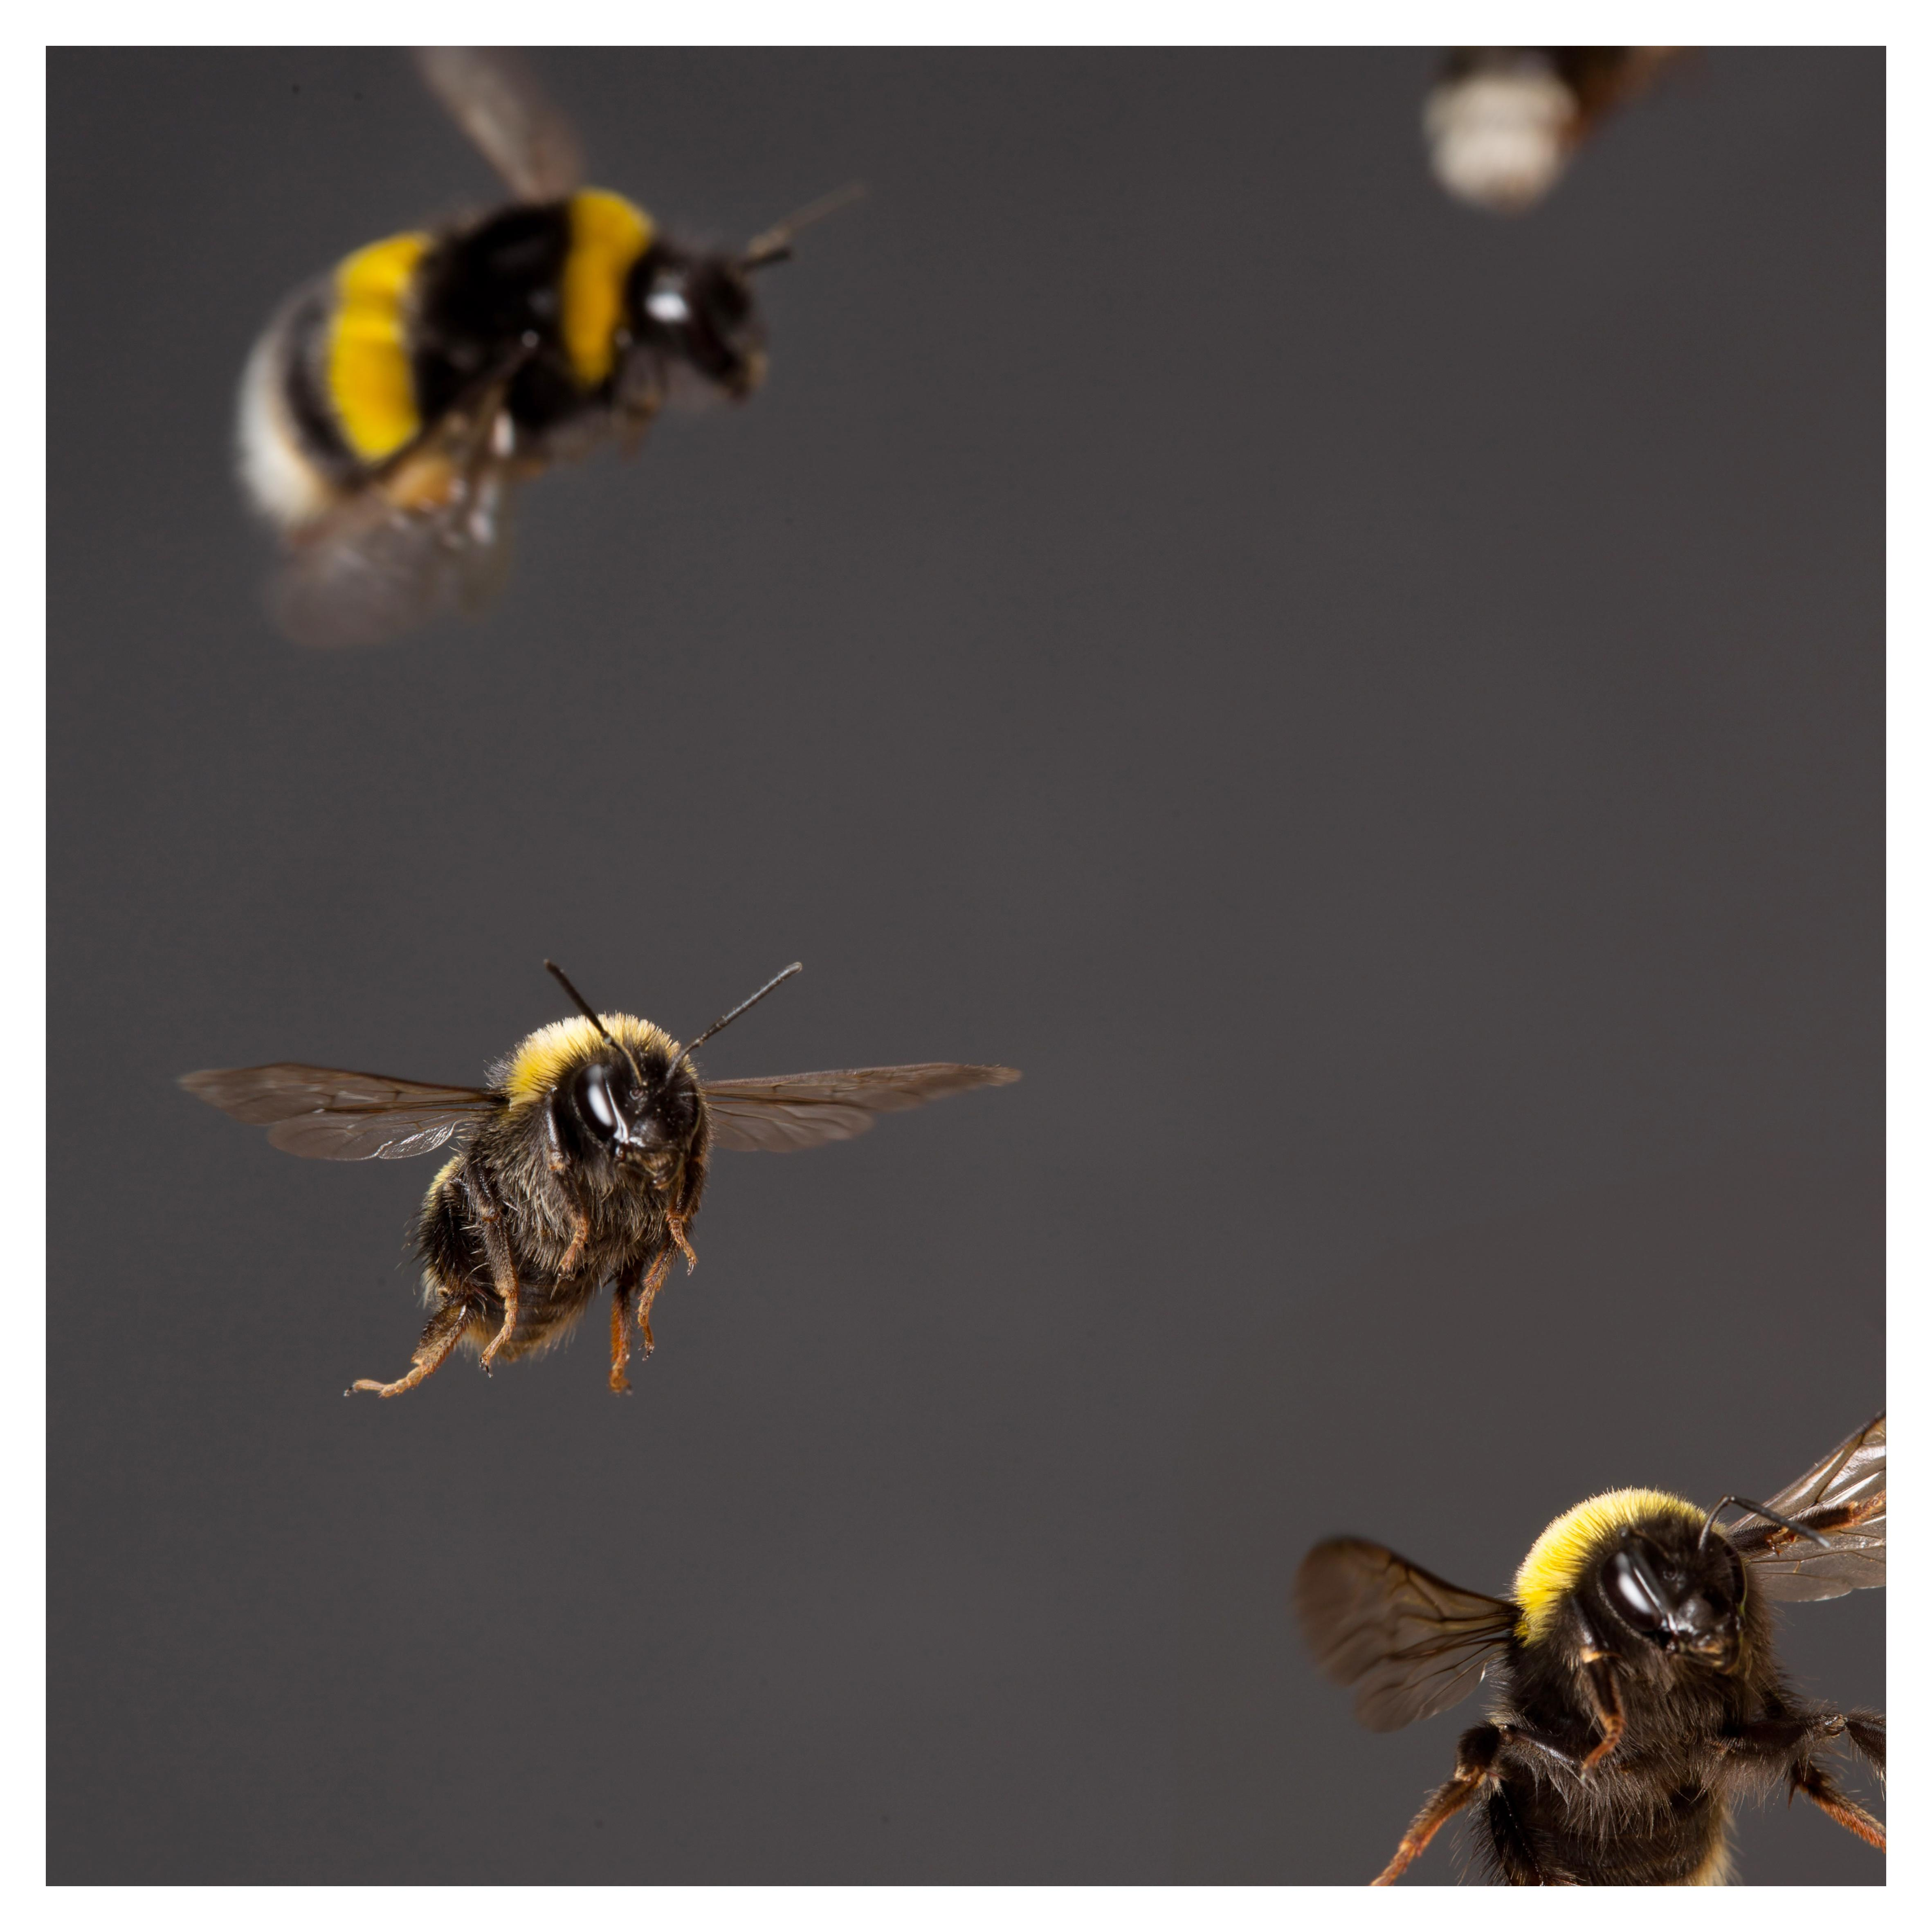 Buy a photograph of bees, by Gerrard Gethings